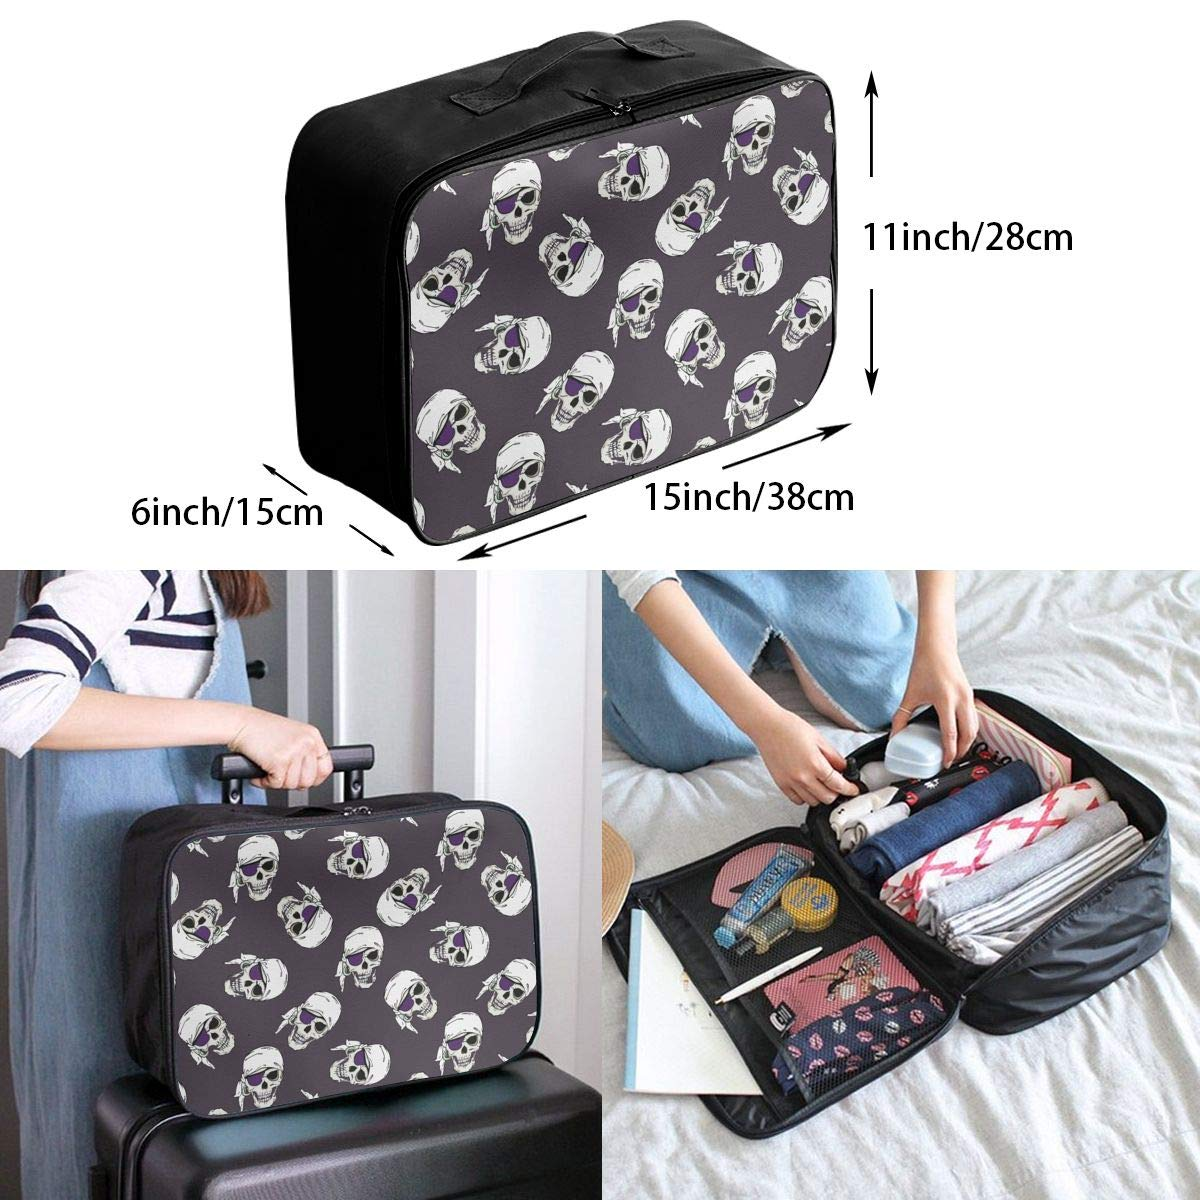 Pirates Skulls Travel Fashion Lightweight Large Capacity Duffel Portable Waterproof Foldable Storage Carry Luggage Tote Bag